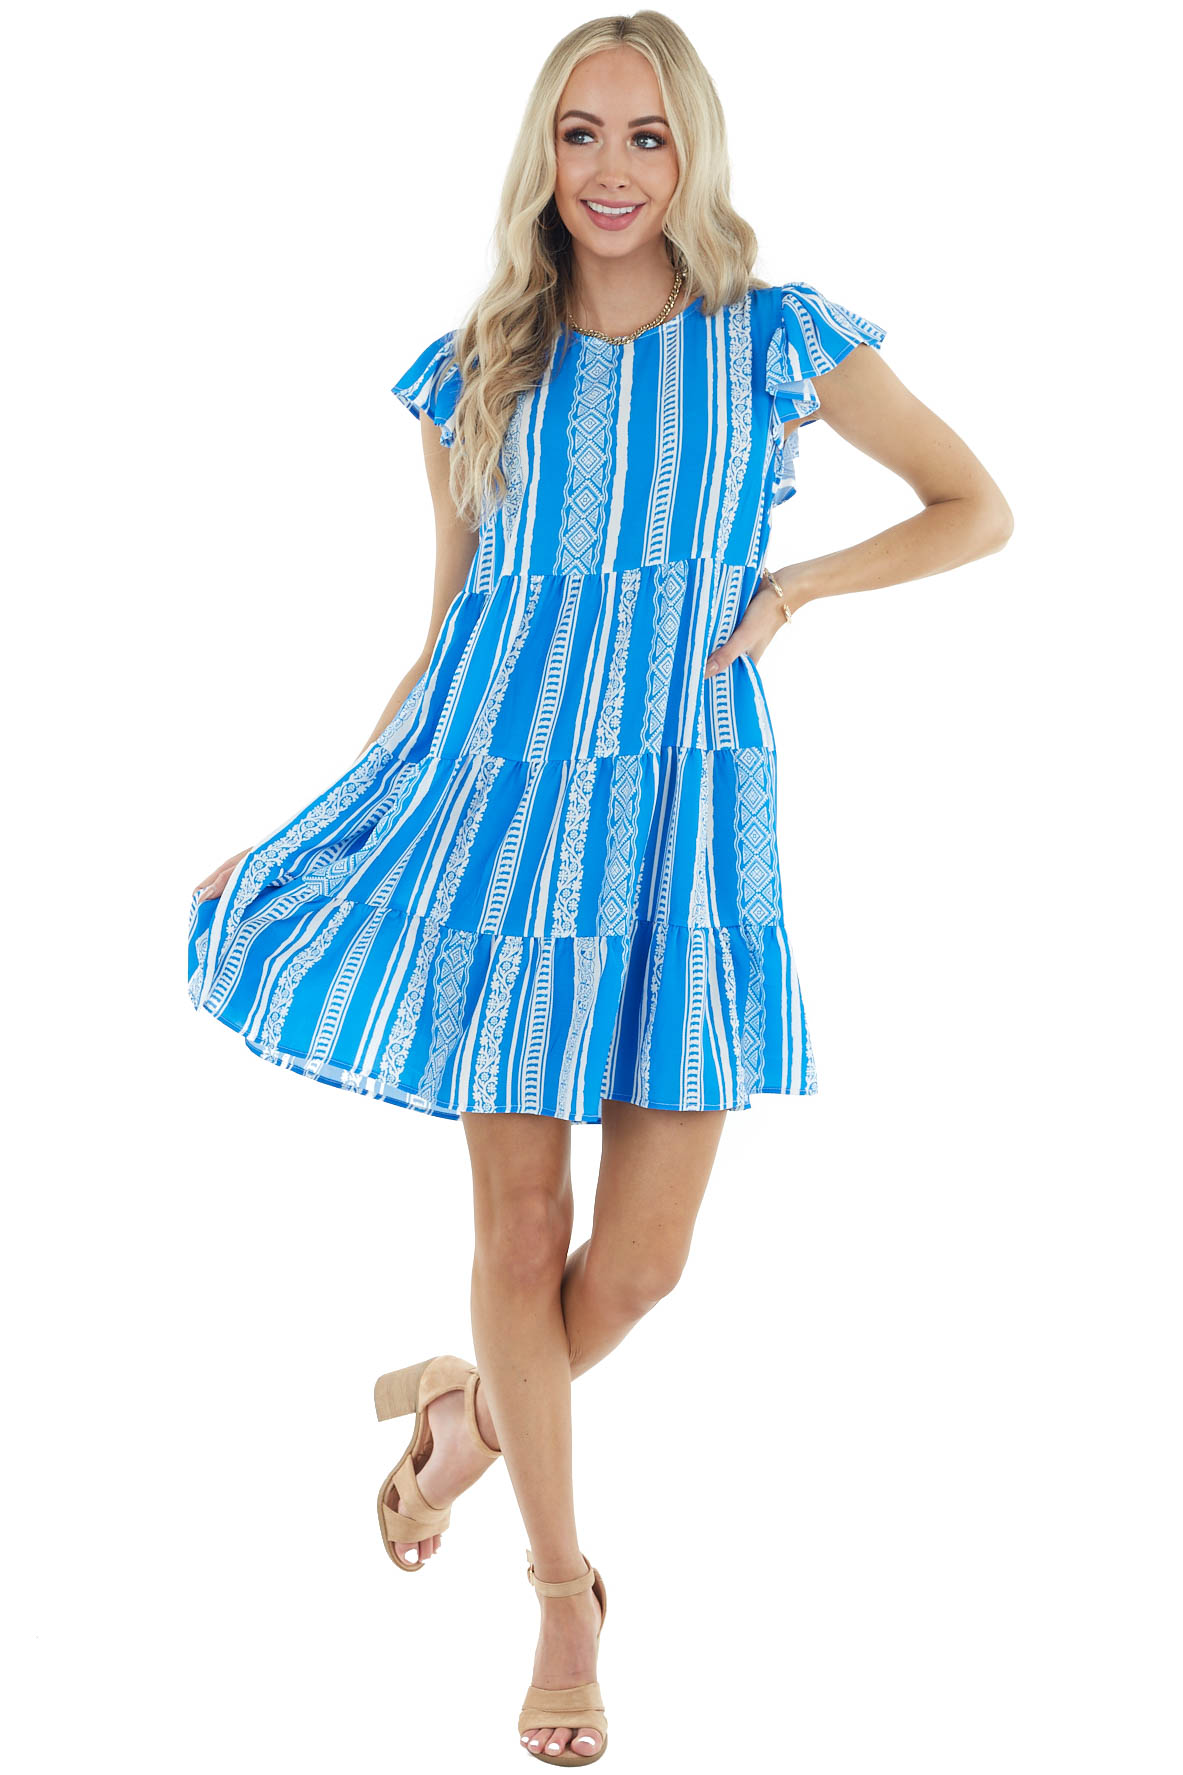 Royal Blue Tiered Short Dress with Short Ruffle Sleeves